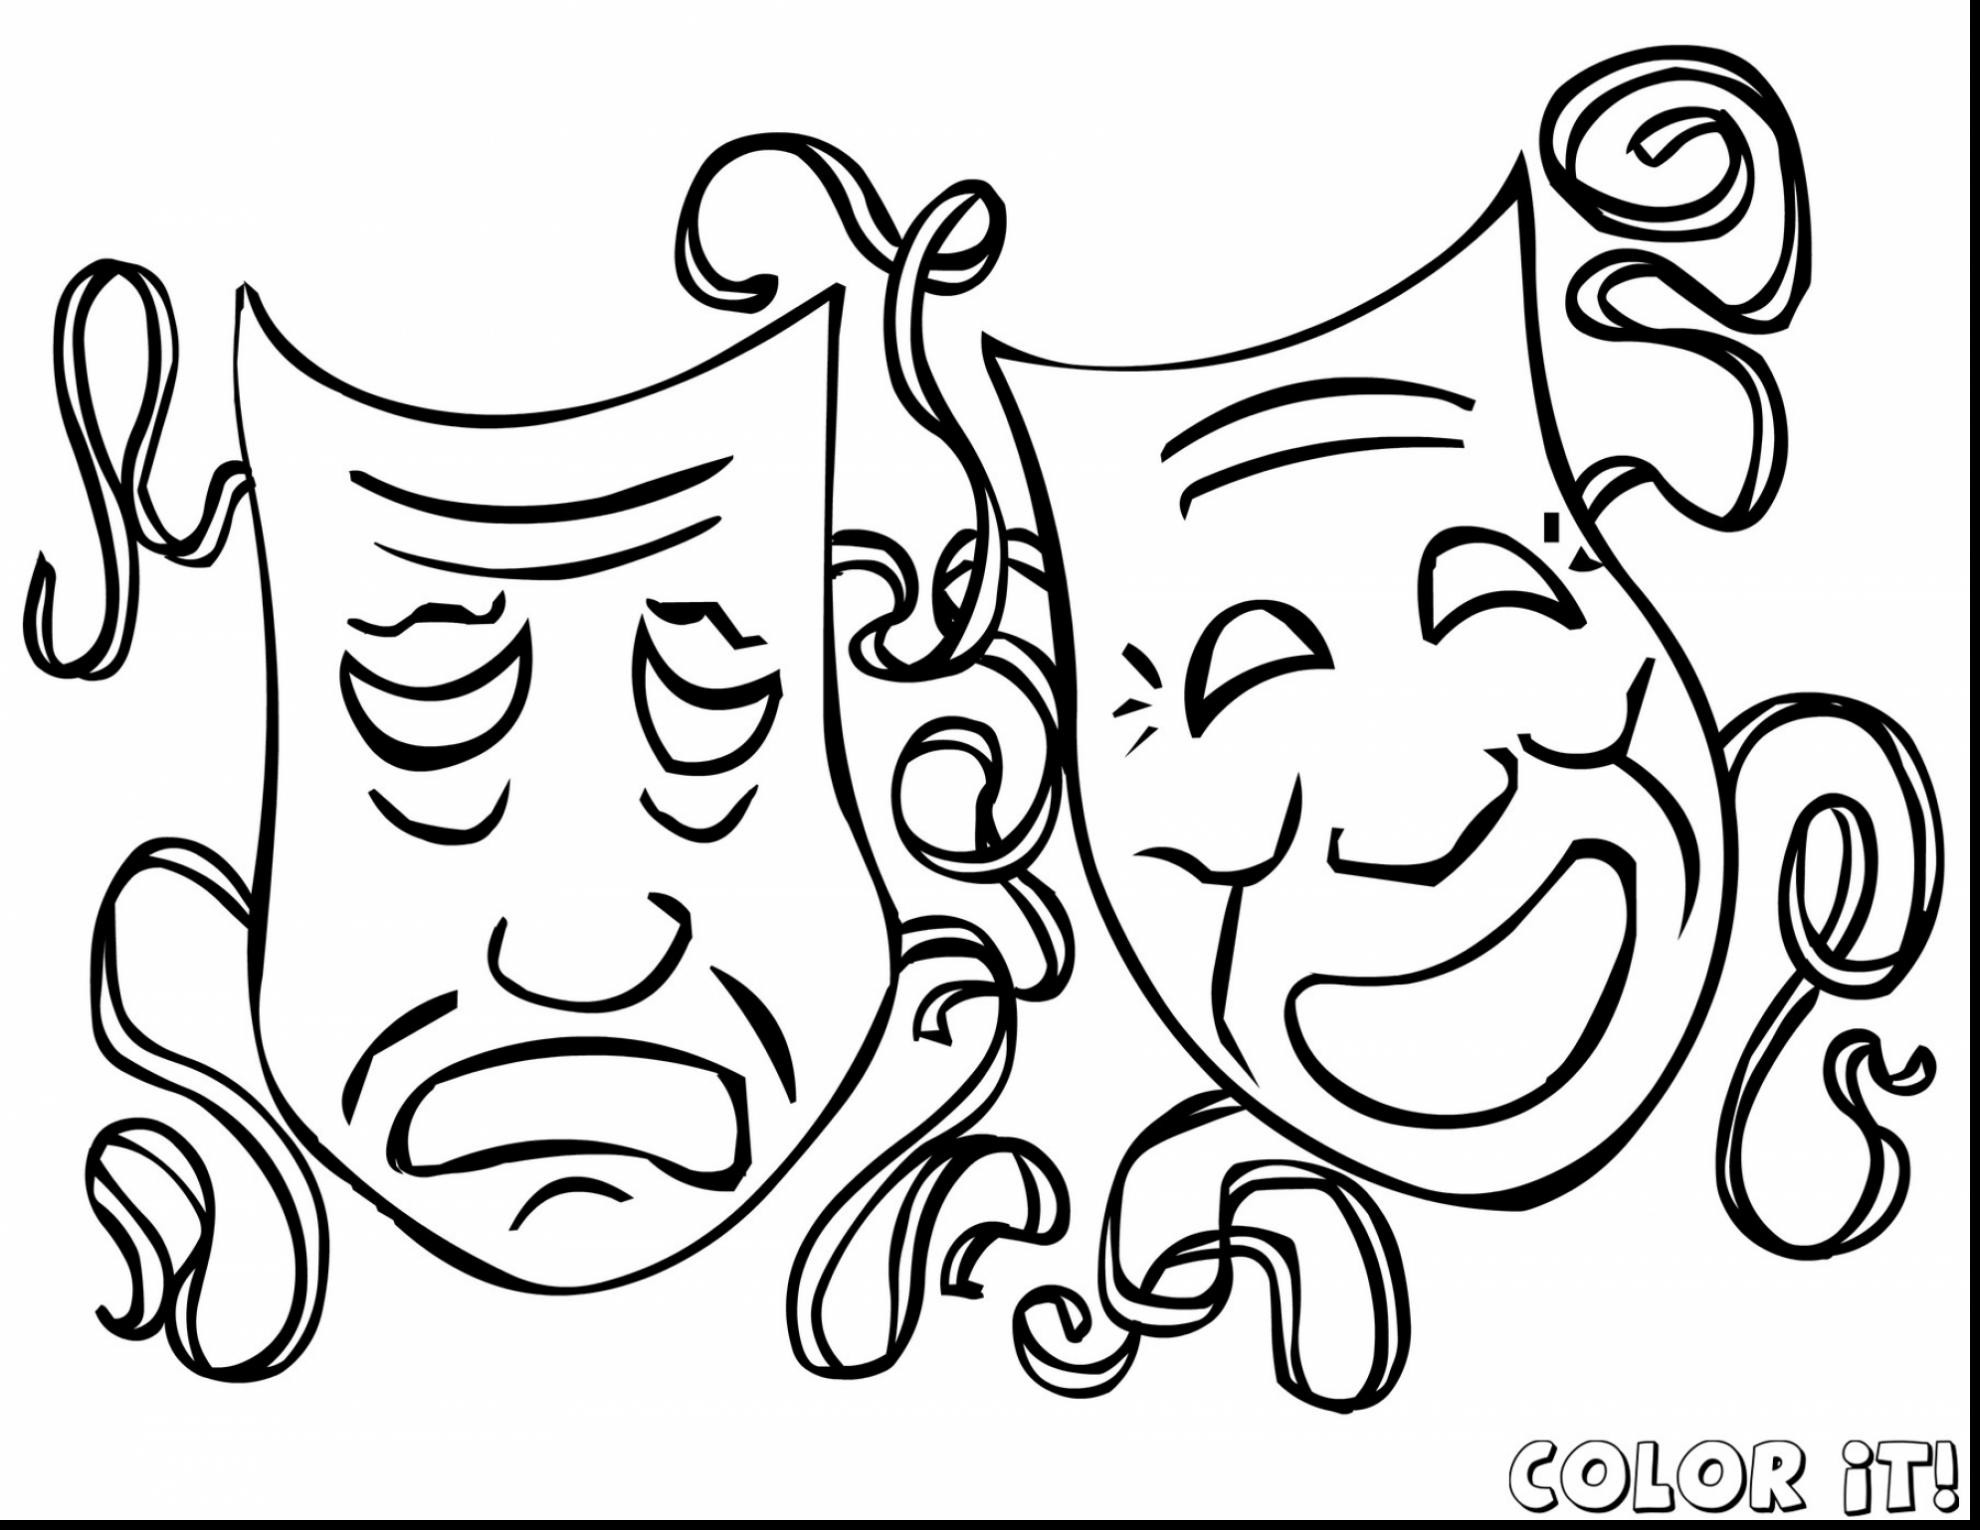 1980x1530 Unbelievable Mardi Gras Mask Coloring Pages With Carnival